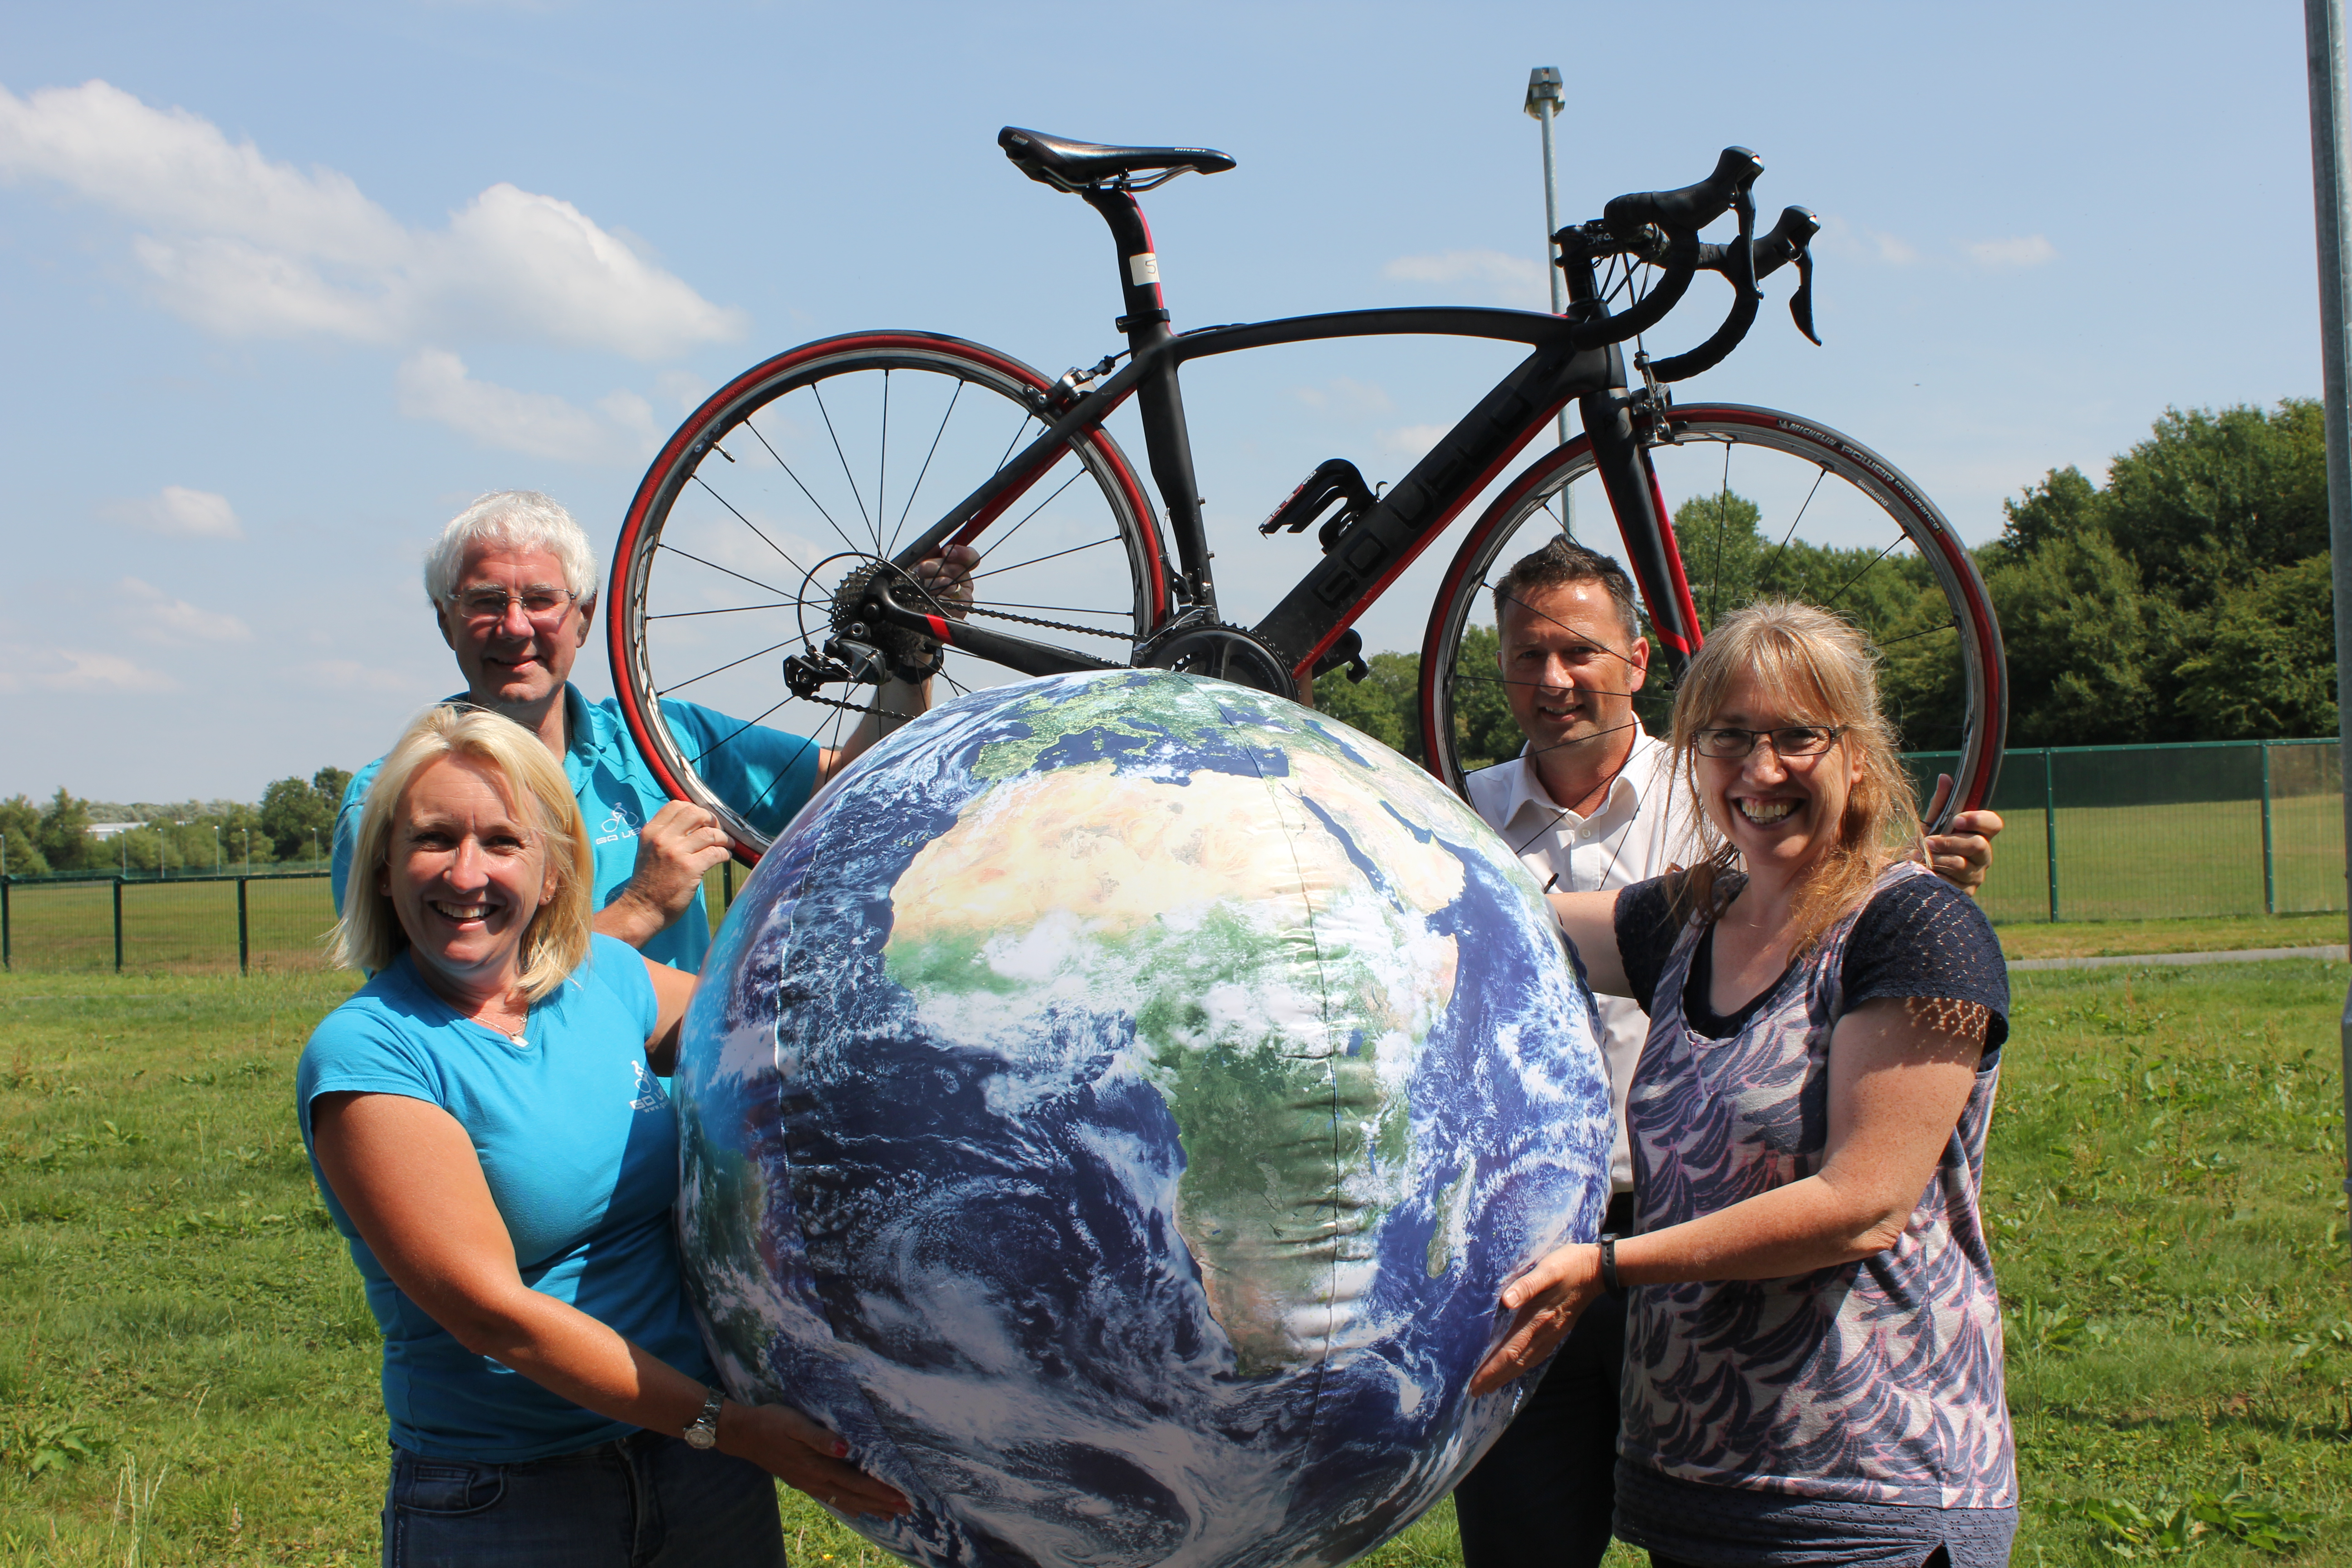 24 hour cycling raises thousands for Pendleside Hospice